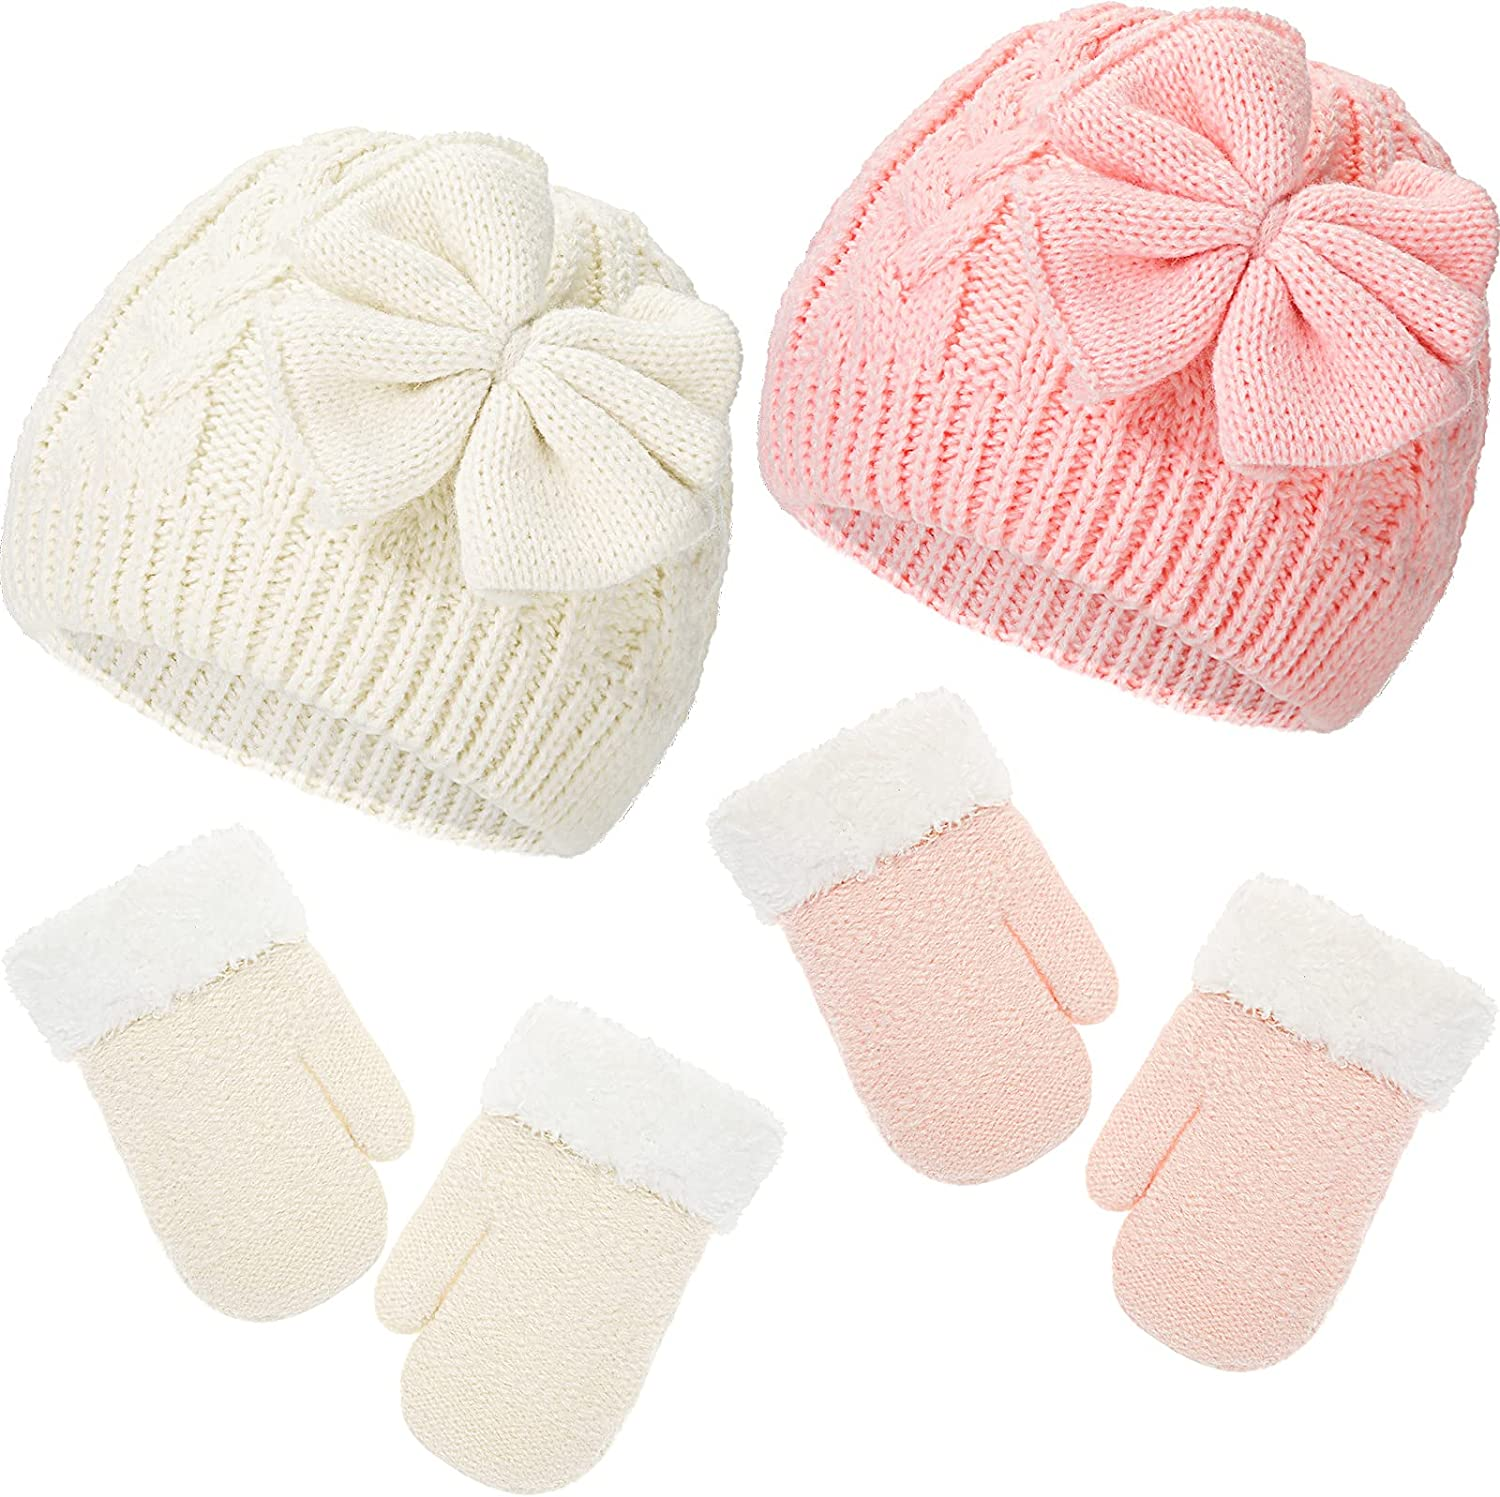 2 Sets Winter Warm Knitted Baby Hat Bow Knitted Infant Hat Fabric Lined Infant Toddler and Winter Baby Gloves Warm Infant Gloves for Baby Inflat